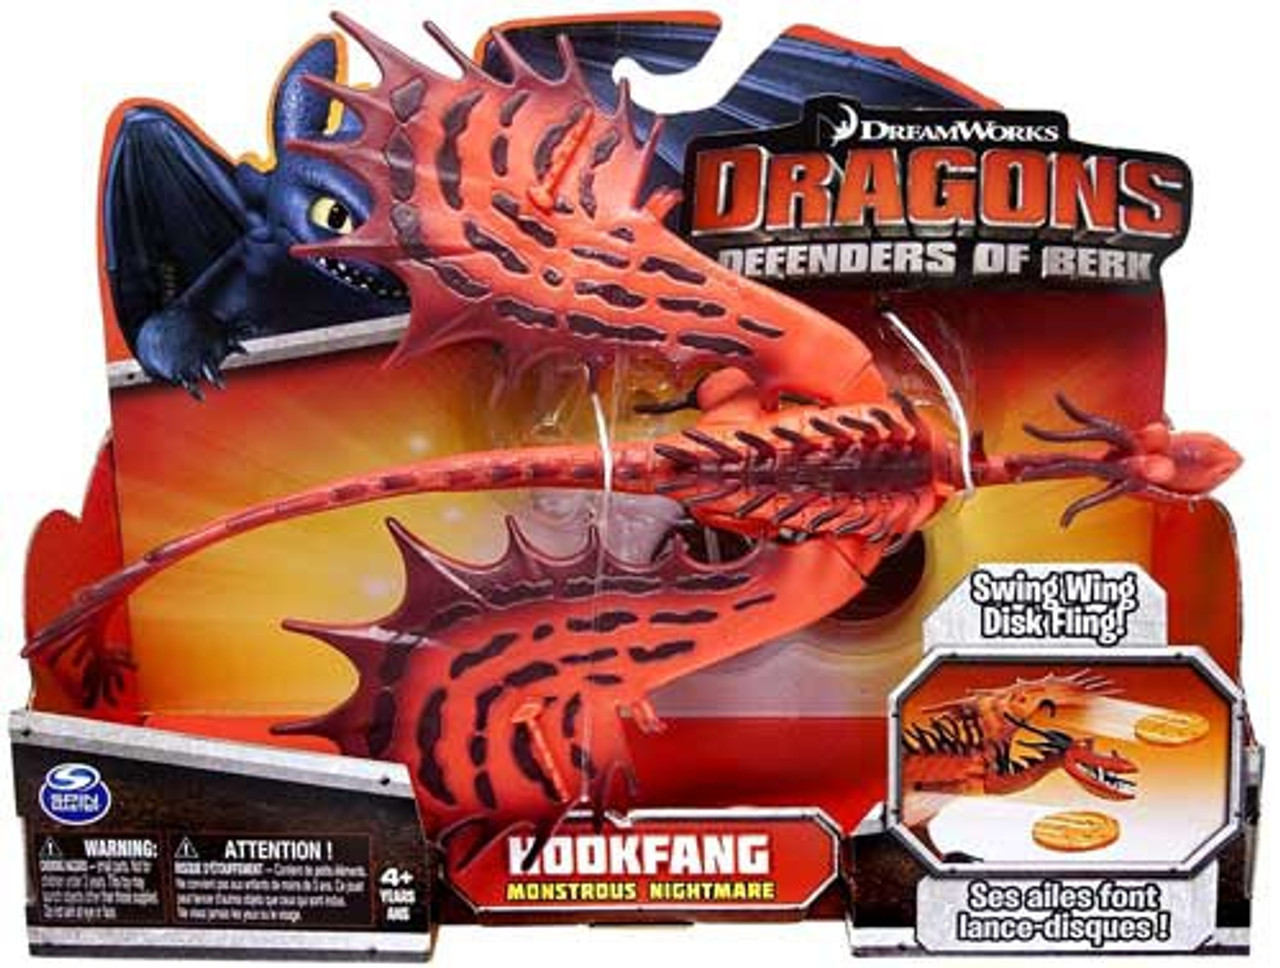 How to train your dragon defenders of berk hookfang action figure how to train your dragon defenders of berk hookfang action figure monstrous nightmare ccuart Images